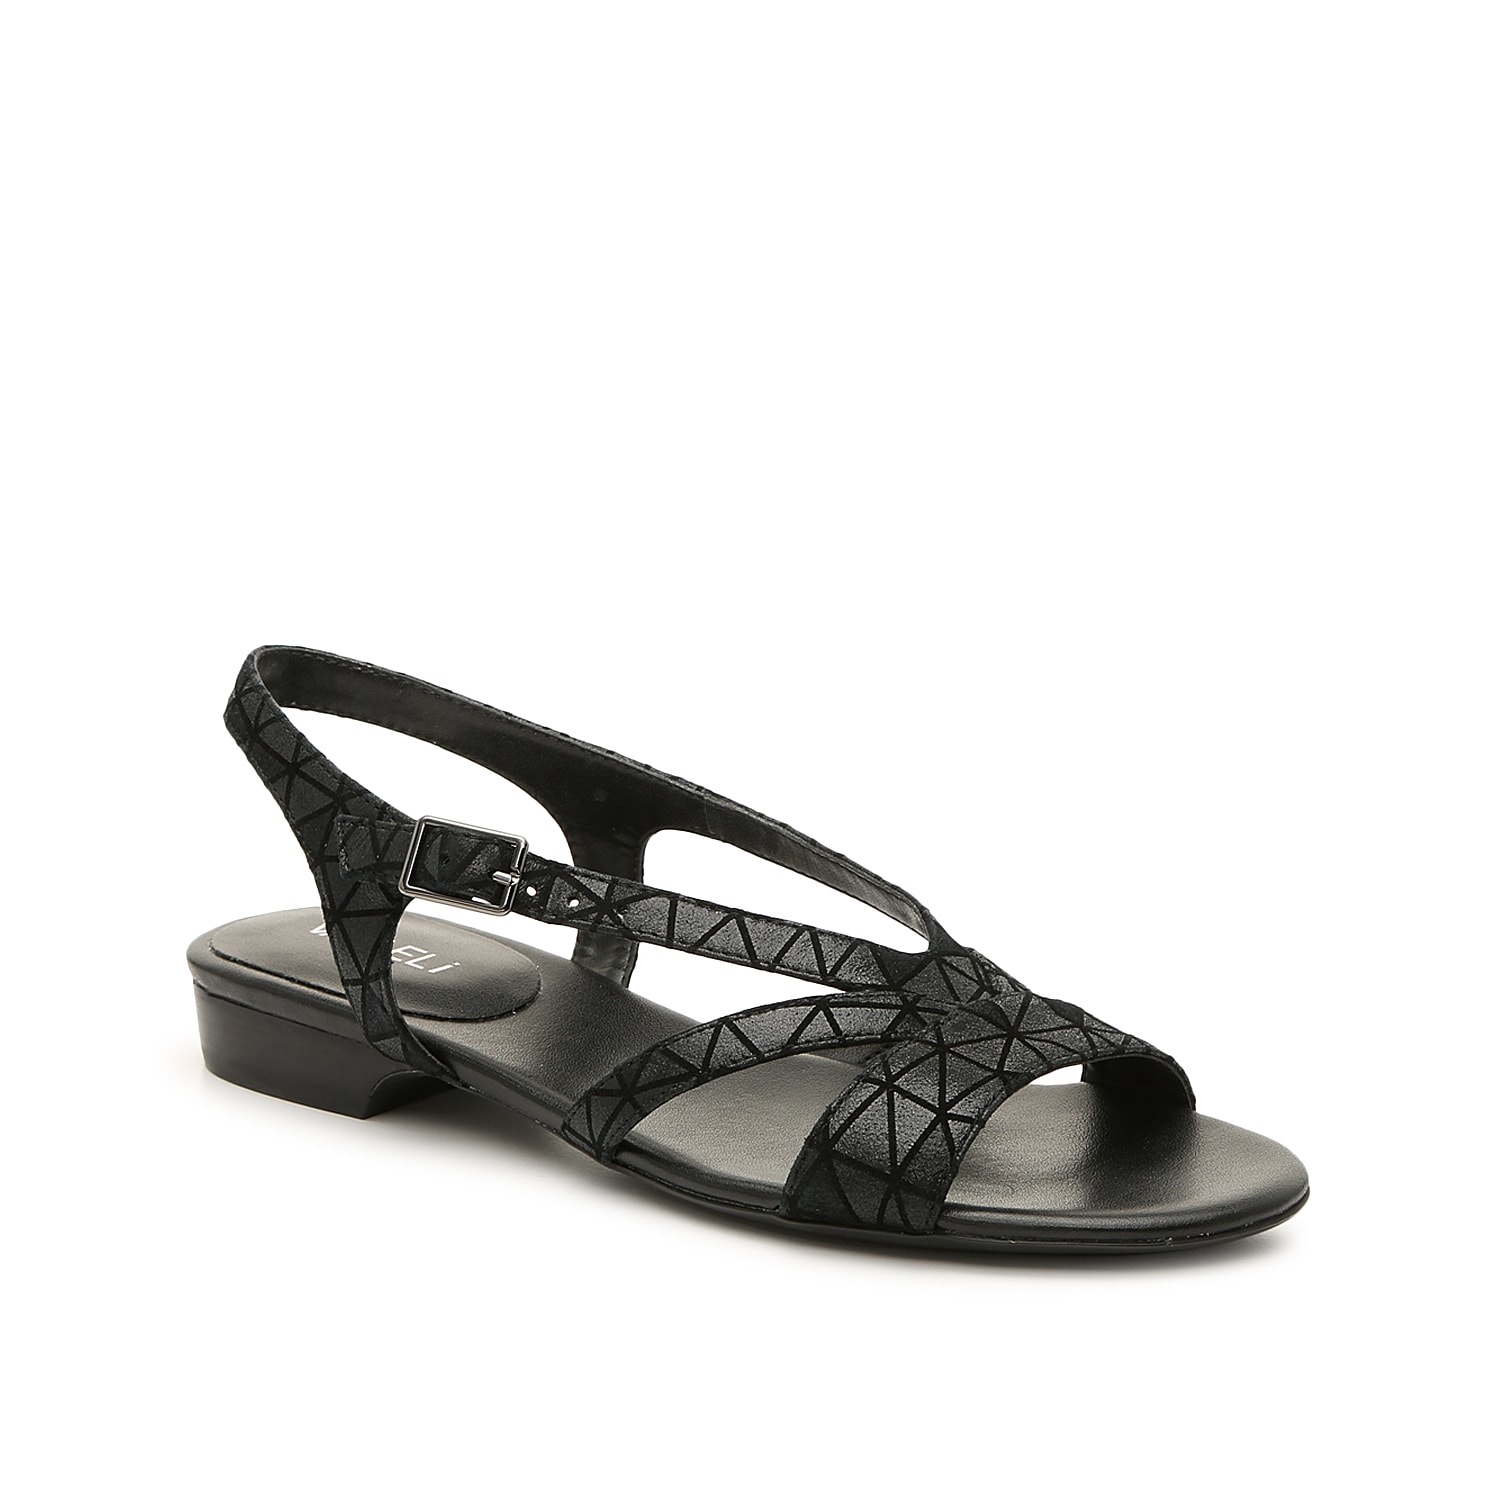 You\\\'ll keep finding new ways to style the Byrd sandal from VANELi. A just-right heel and padded footbed keeps you going all day long.